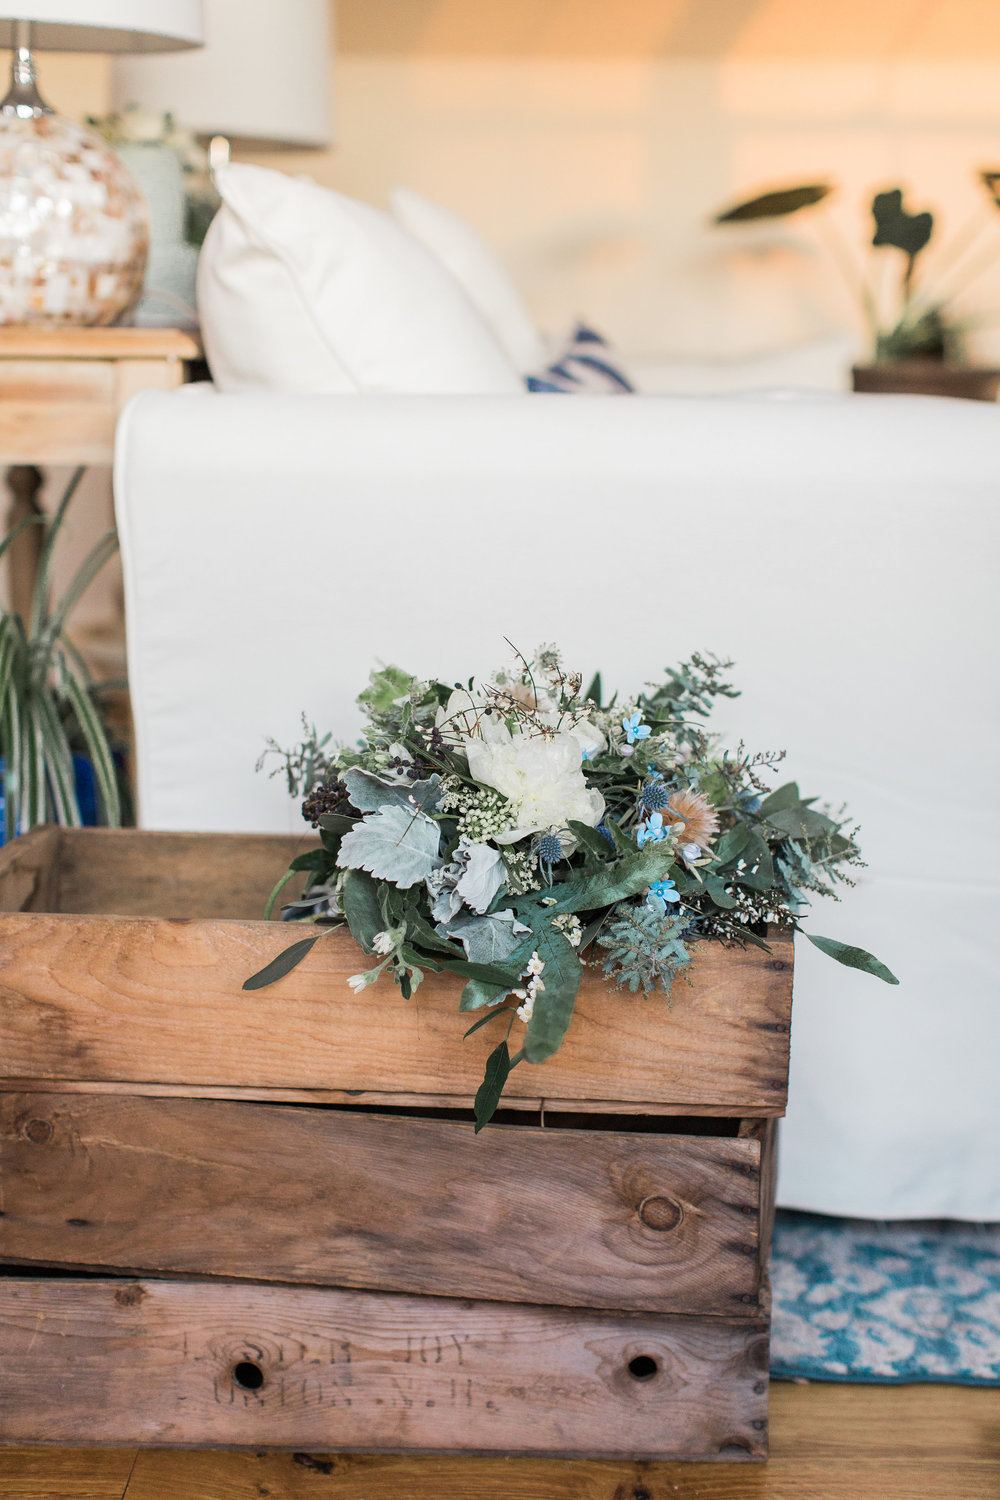 Cunningham_Farm_Winter_Styled_Wedding_Shoot_Meredith_Jane_Photography-245.jpg